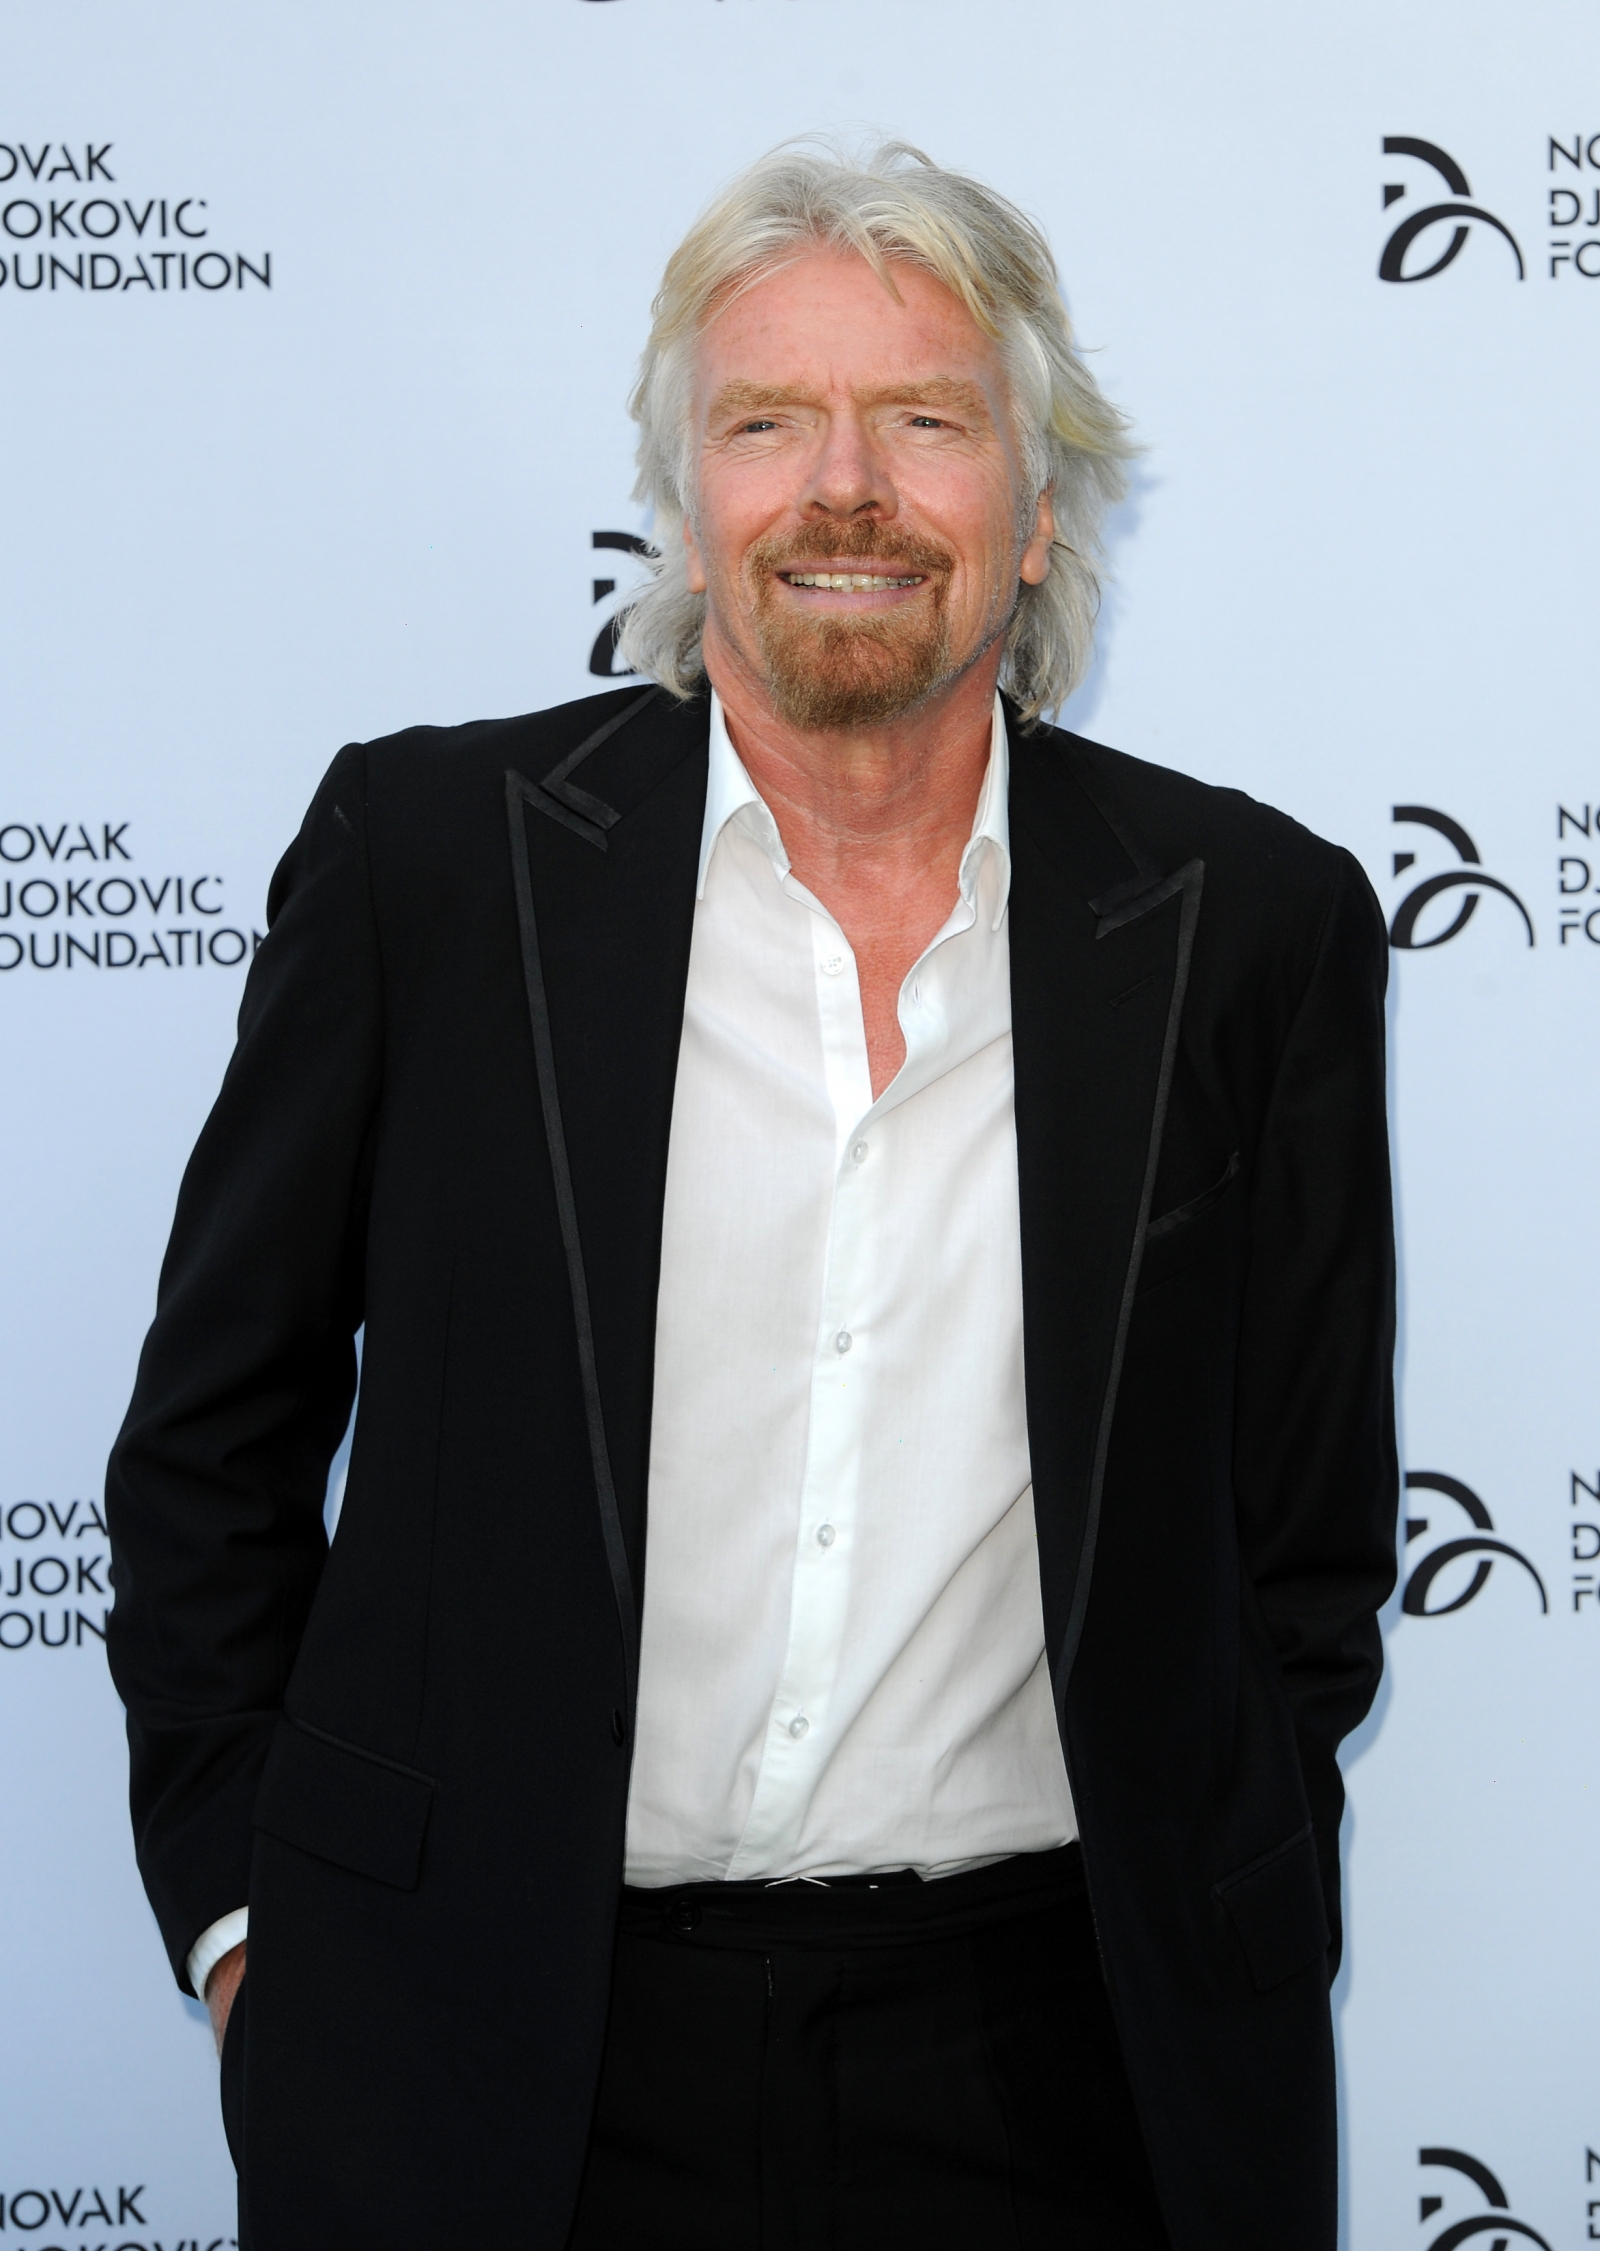 Brexit: Reactions of Richard Branson, Jes Staley and other top business leaders